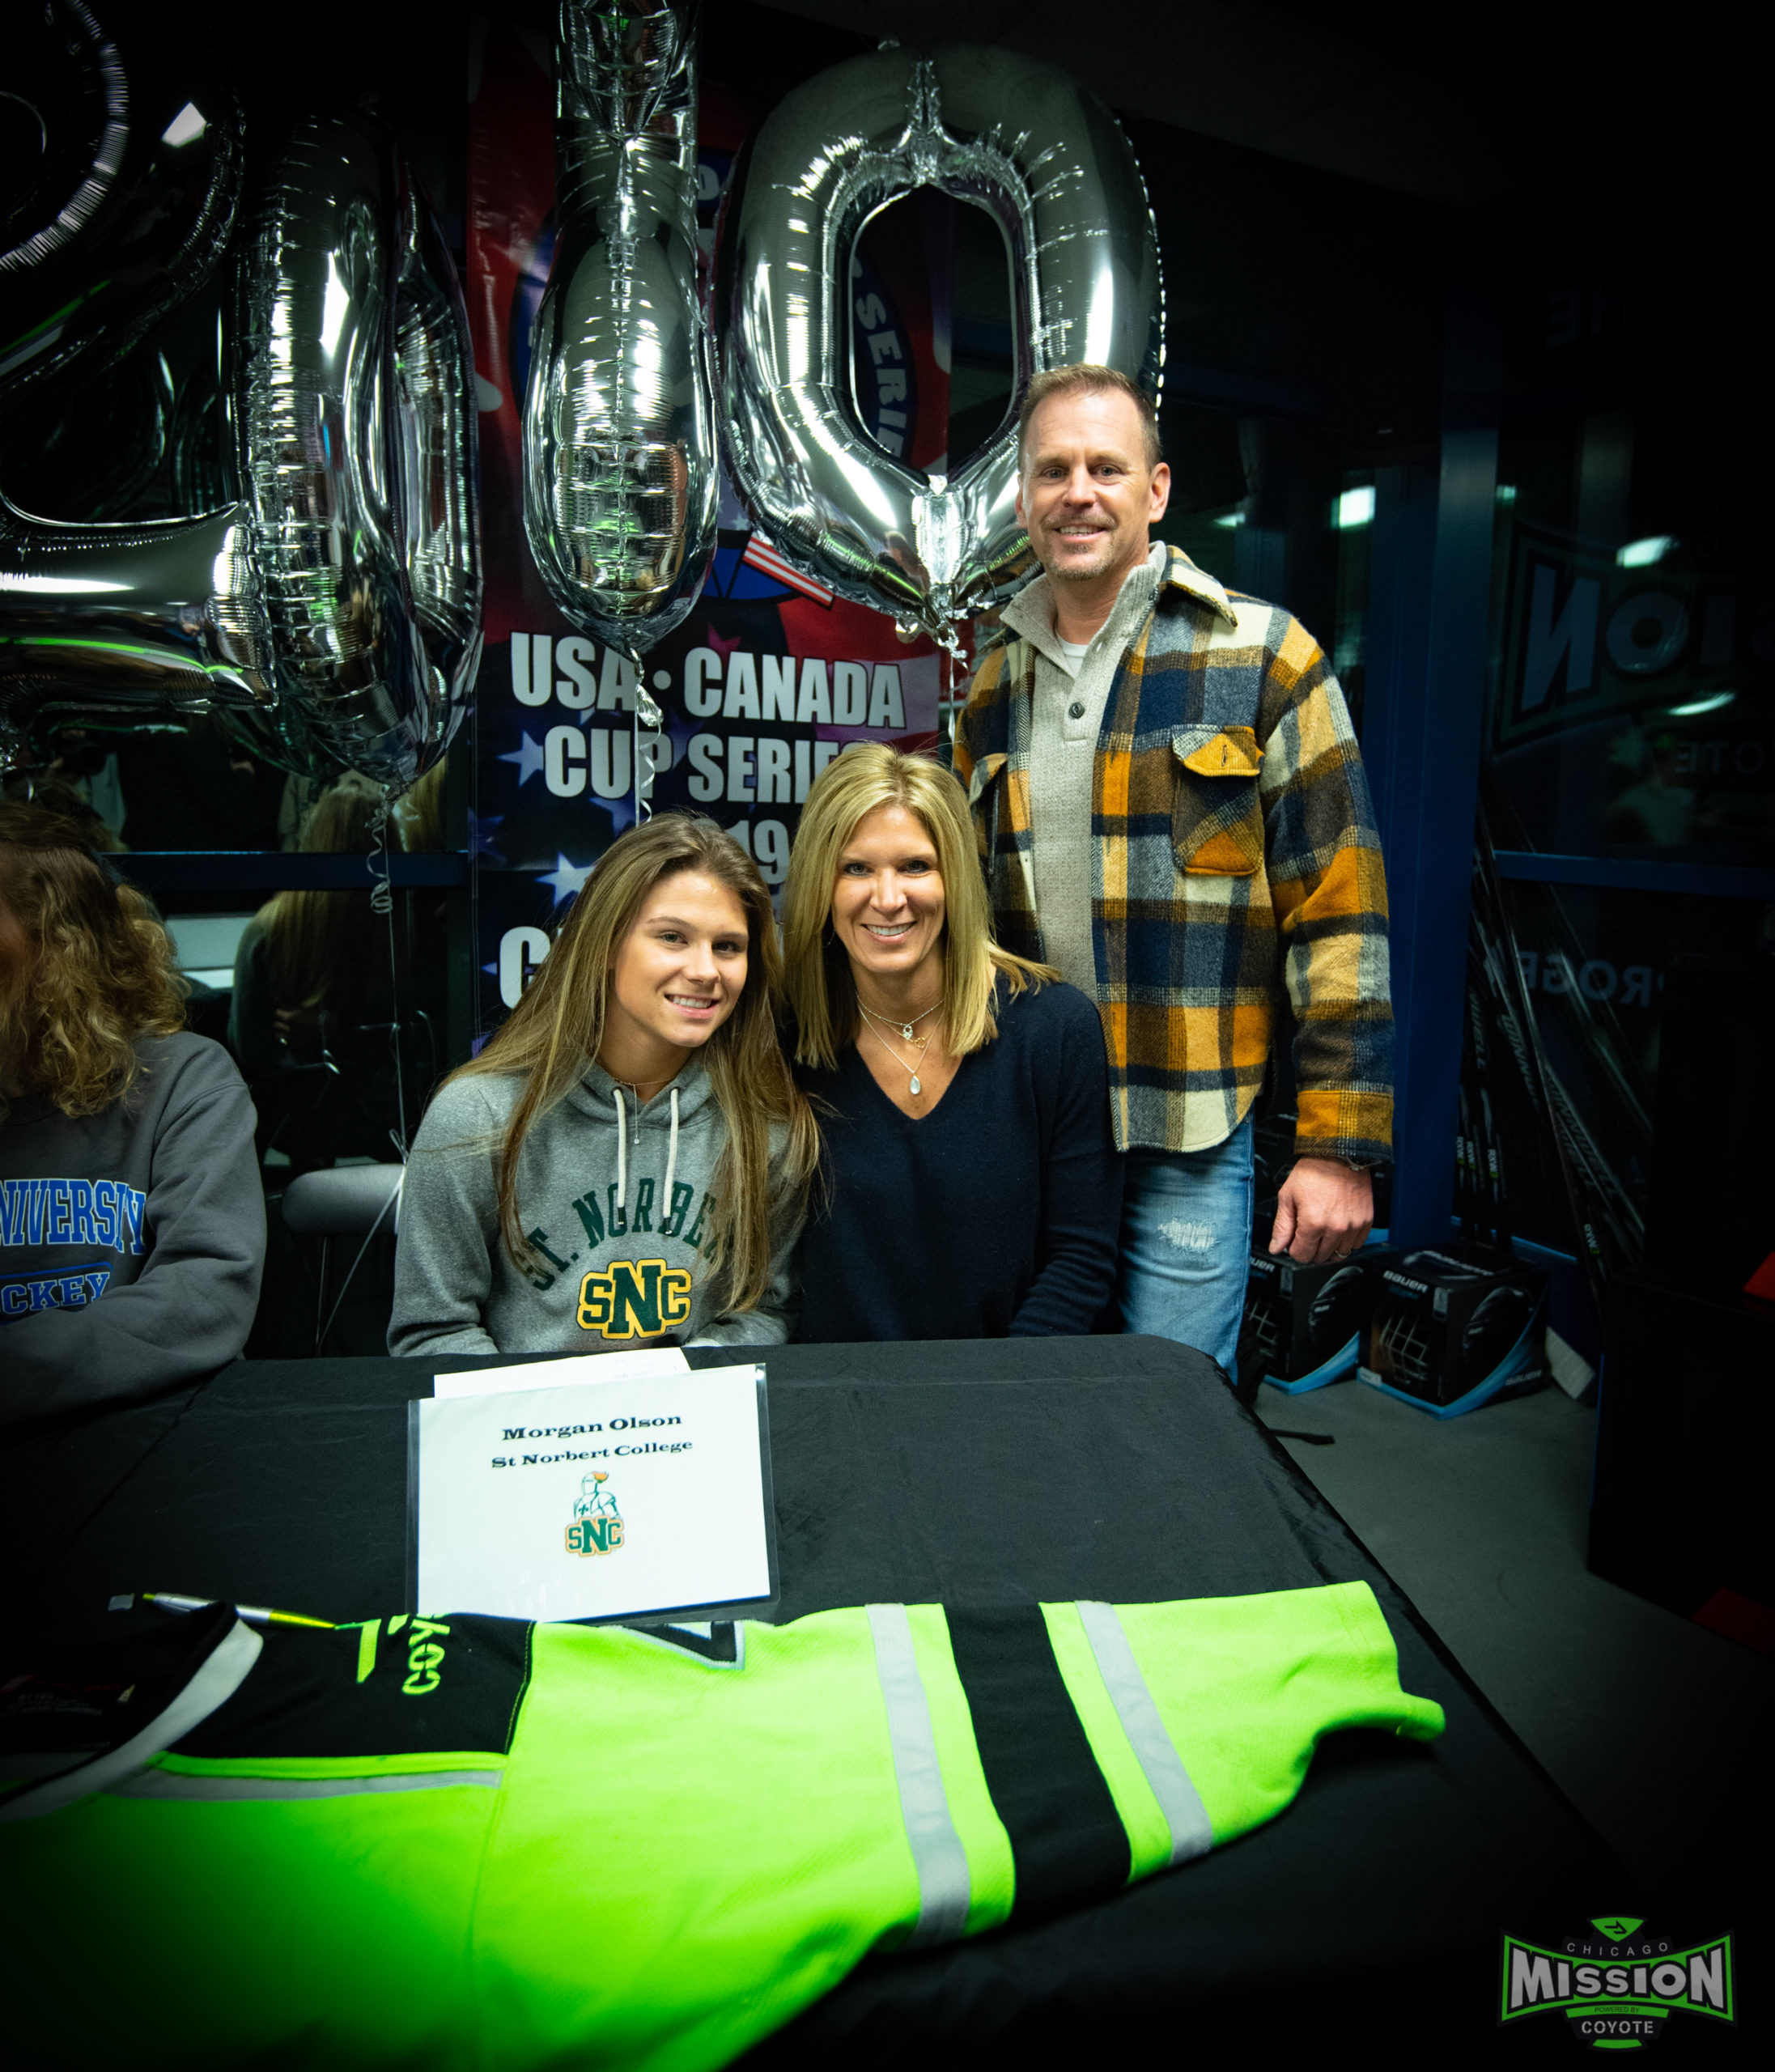 NLI - Morgan Olson